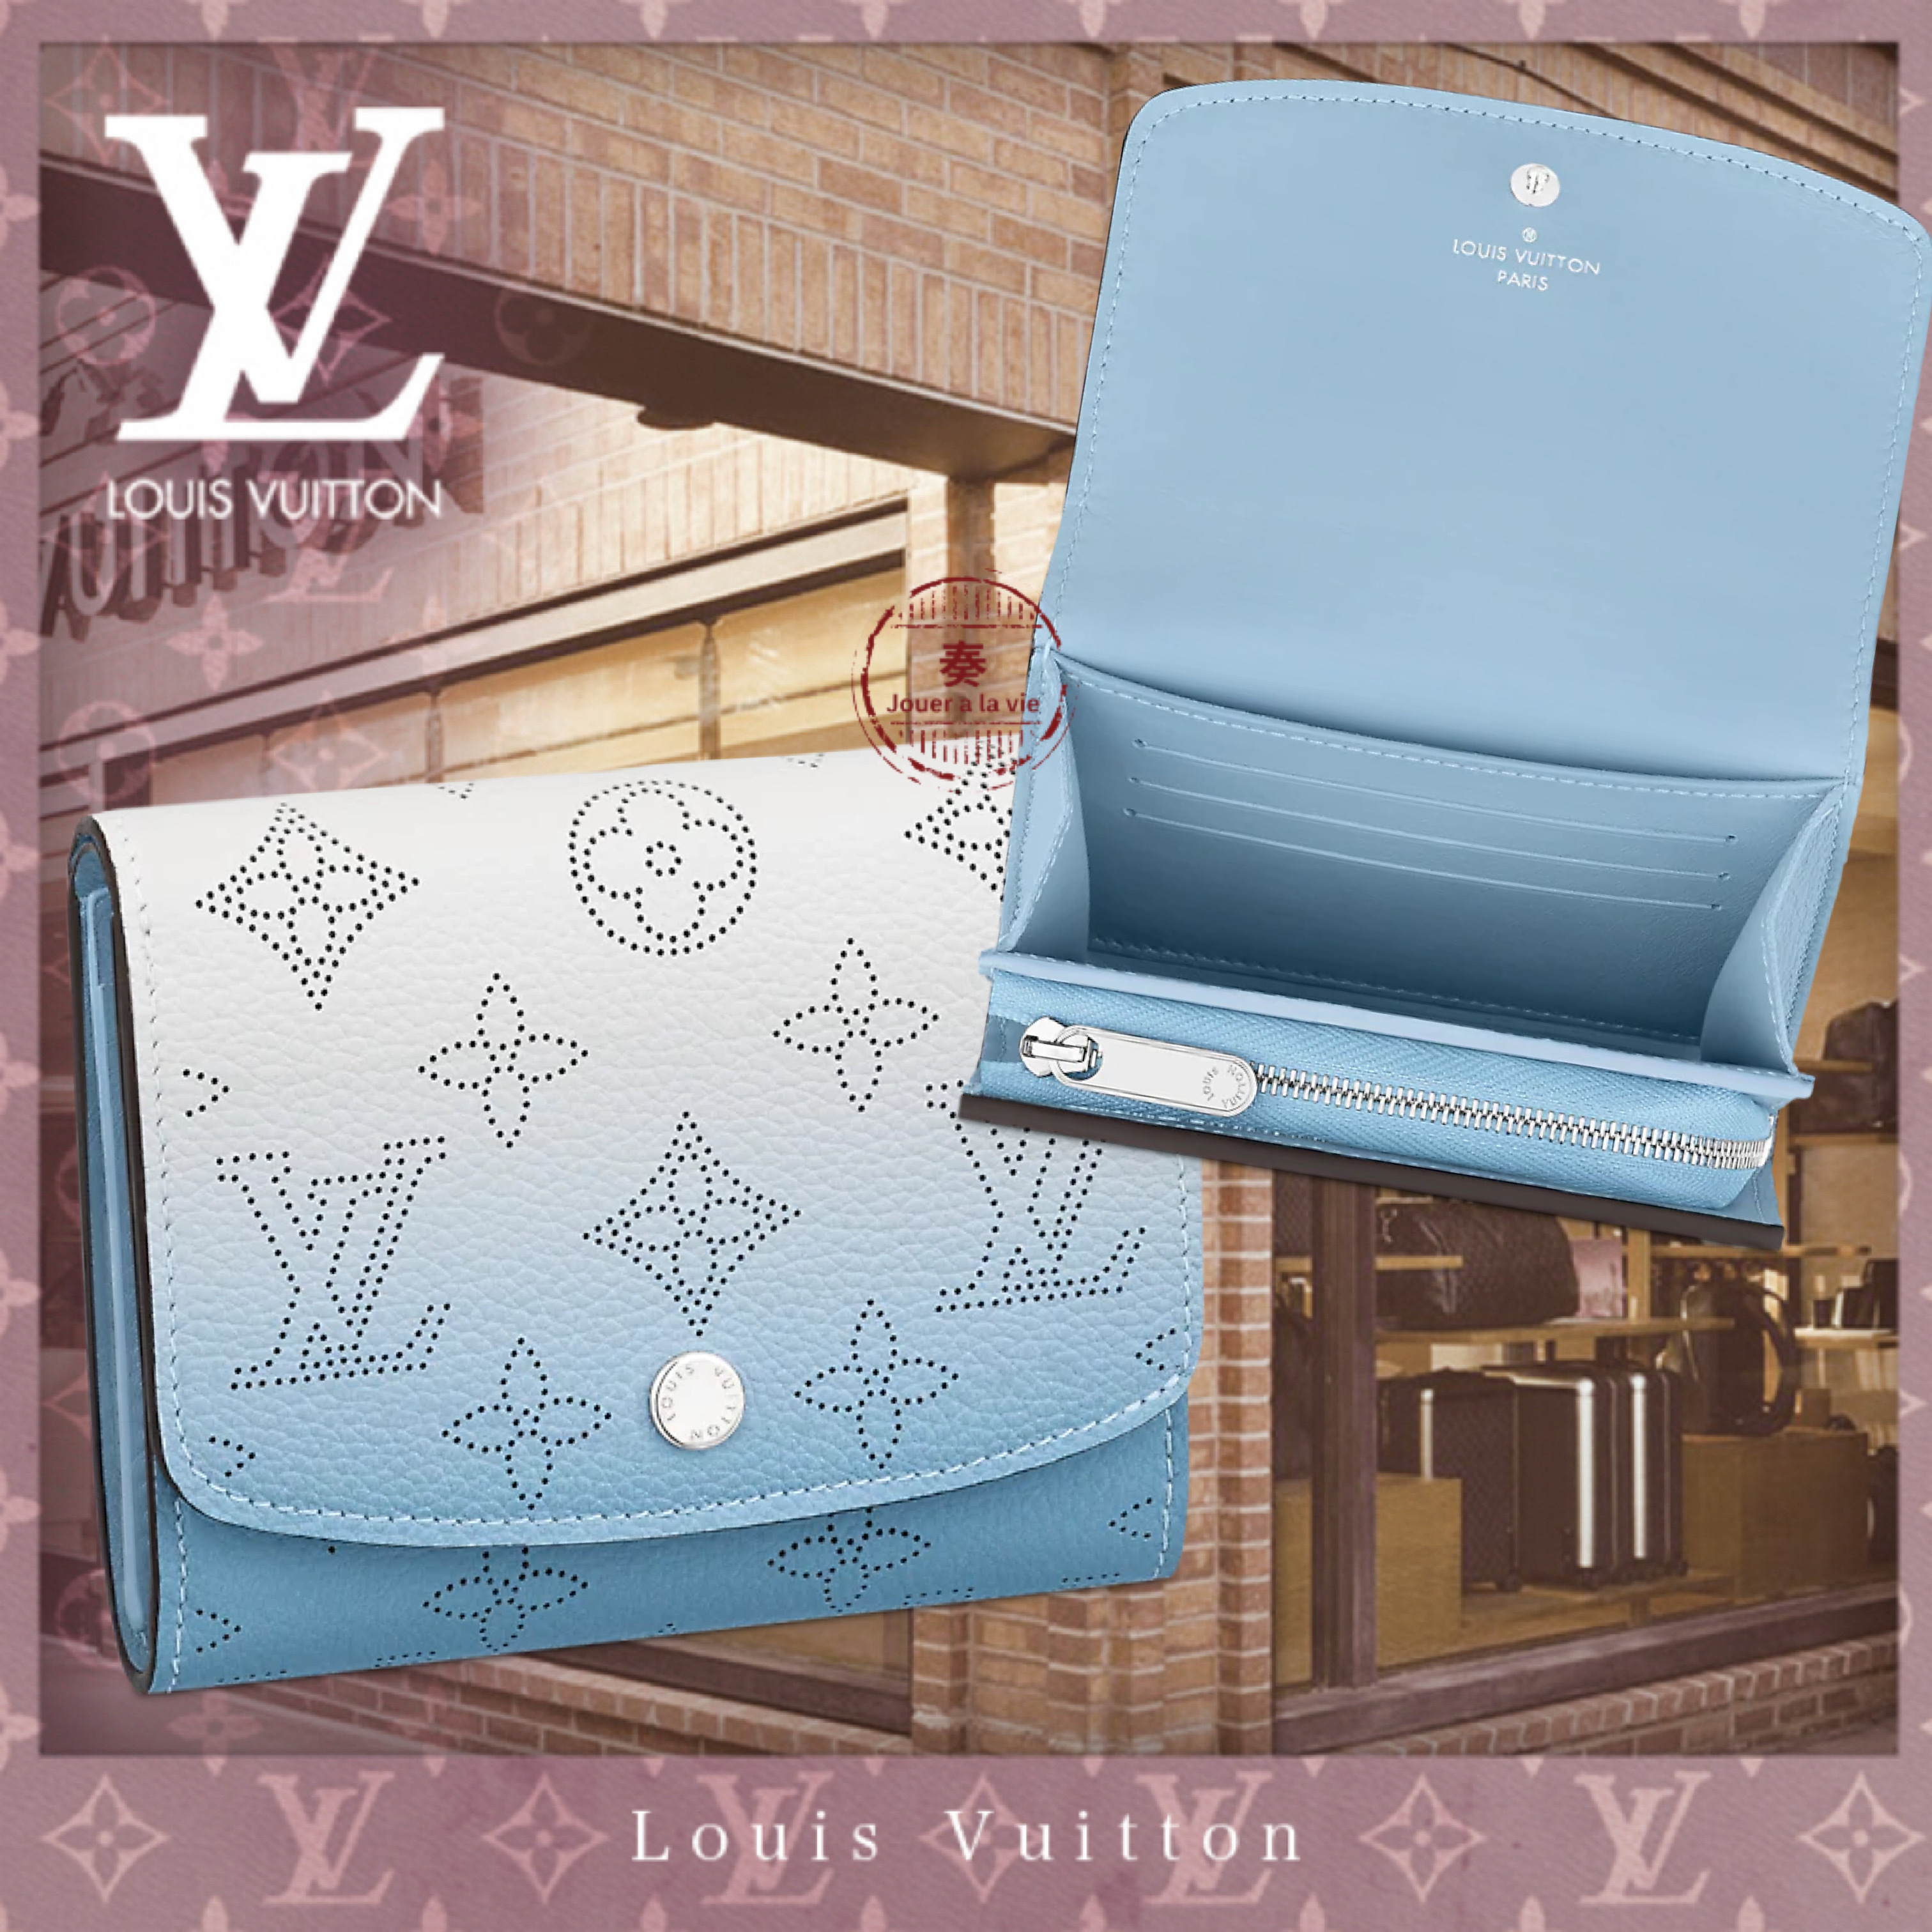 21SS直営買付 Louis Vuitton ポルトフォイユ・イリス コンパクト (Louis Vuitton/折りたたみ財布) M80492